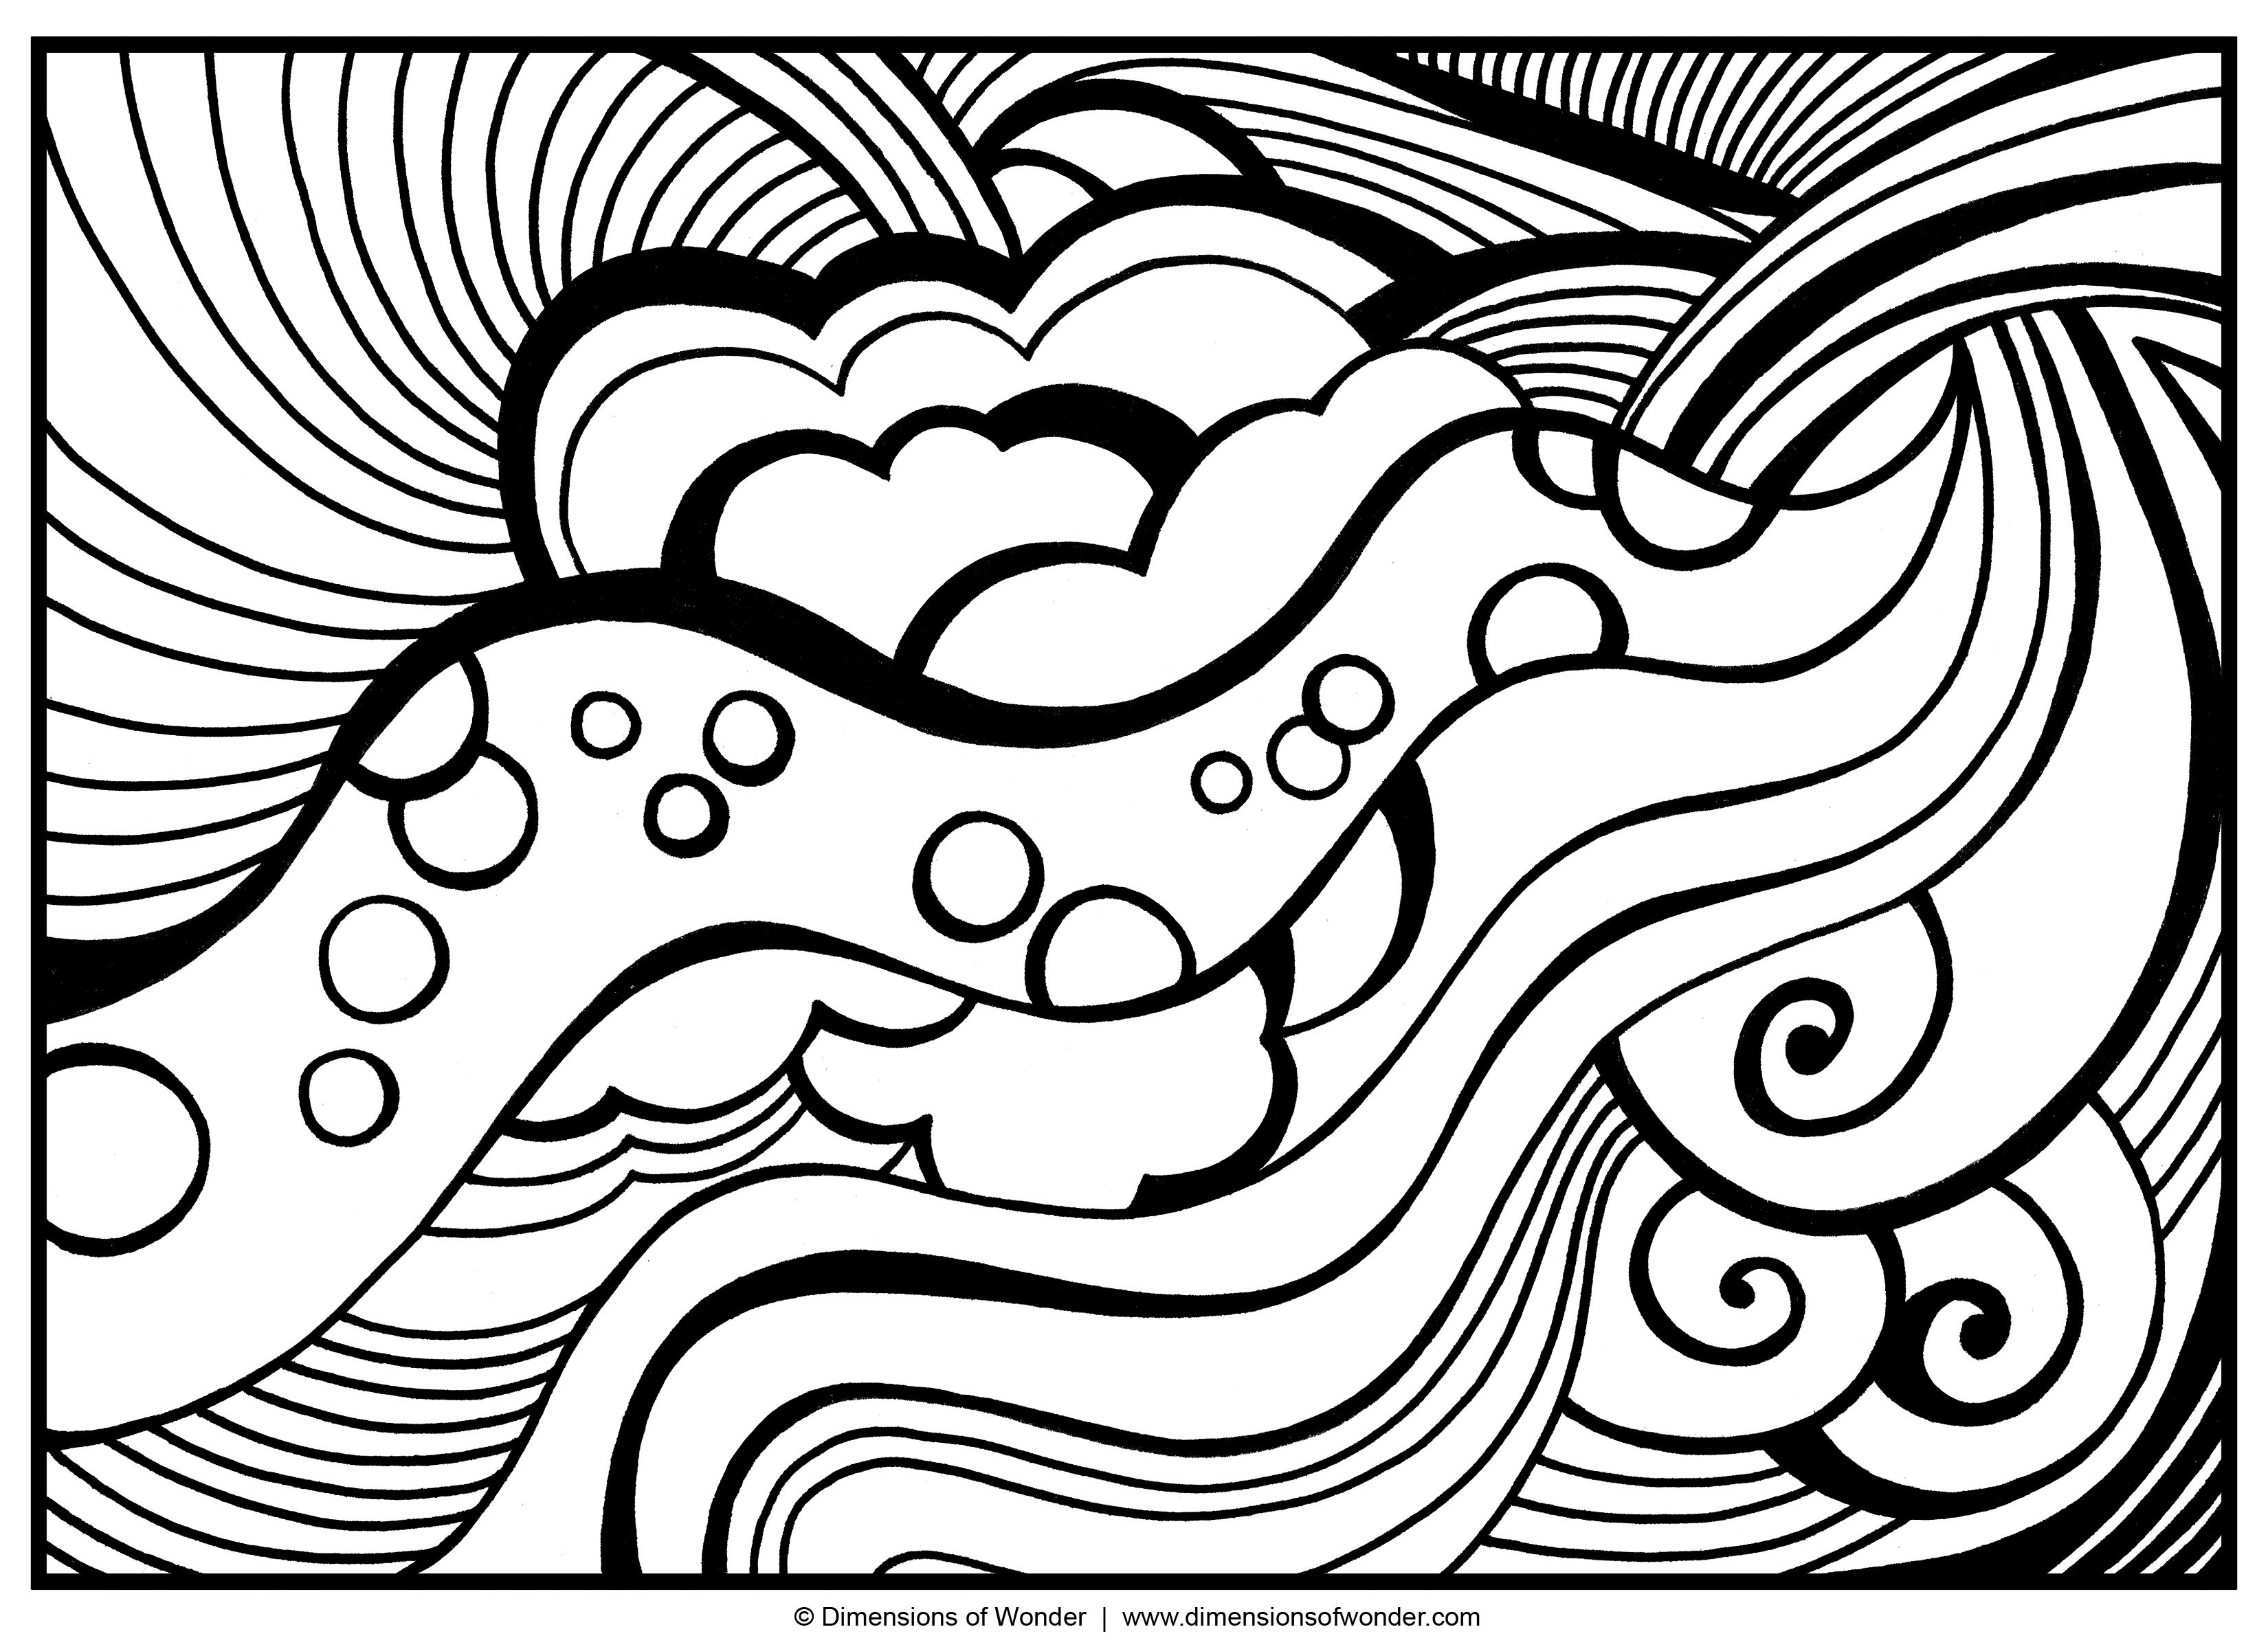 abstract coloring pages for kids free printable abstract coloring pages for adults pages coloring abstract kids for